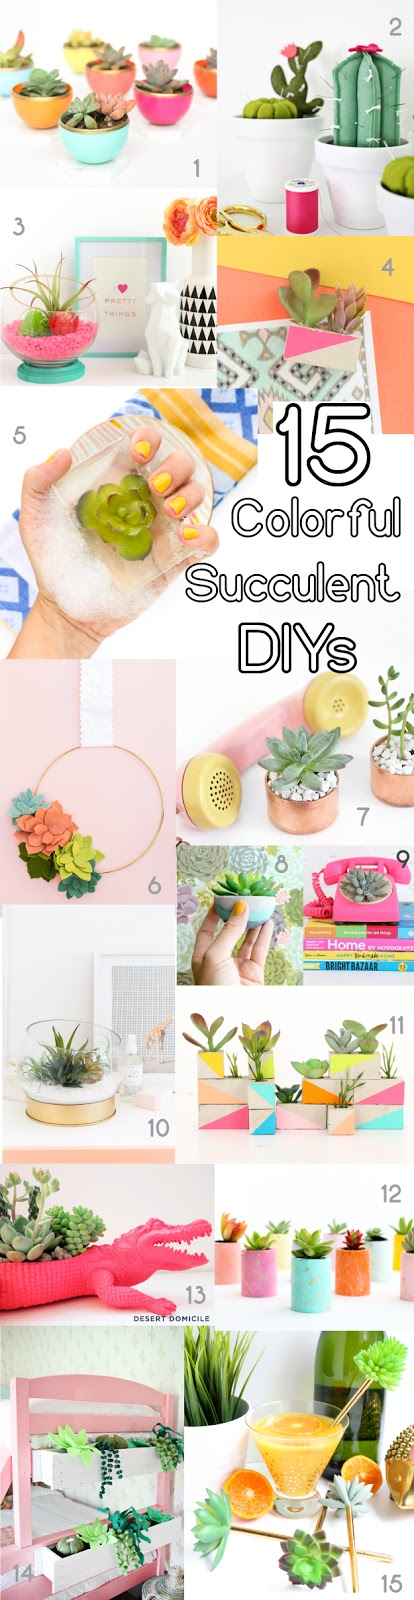 15 of the best colorful DIY Succulent Projects and Crafts